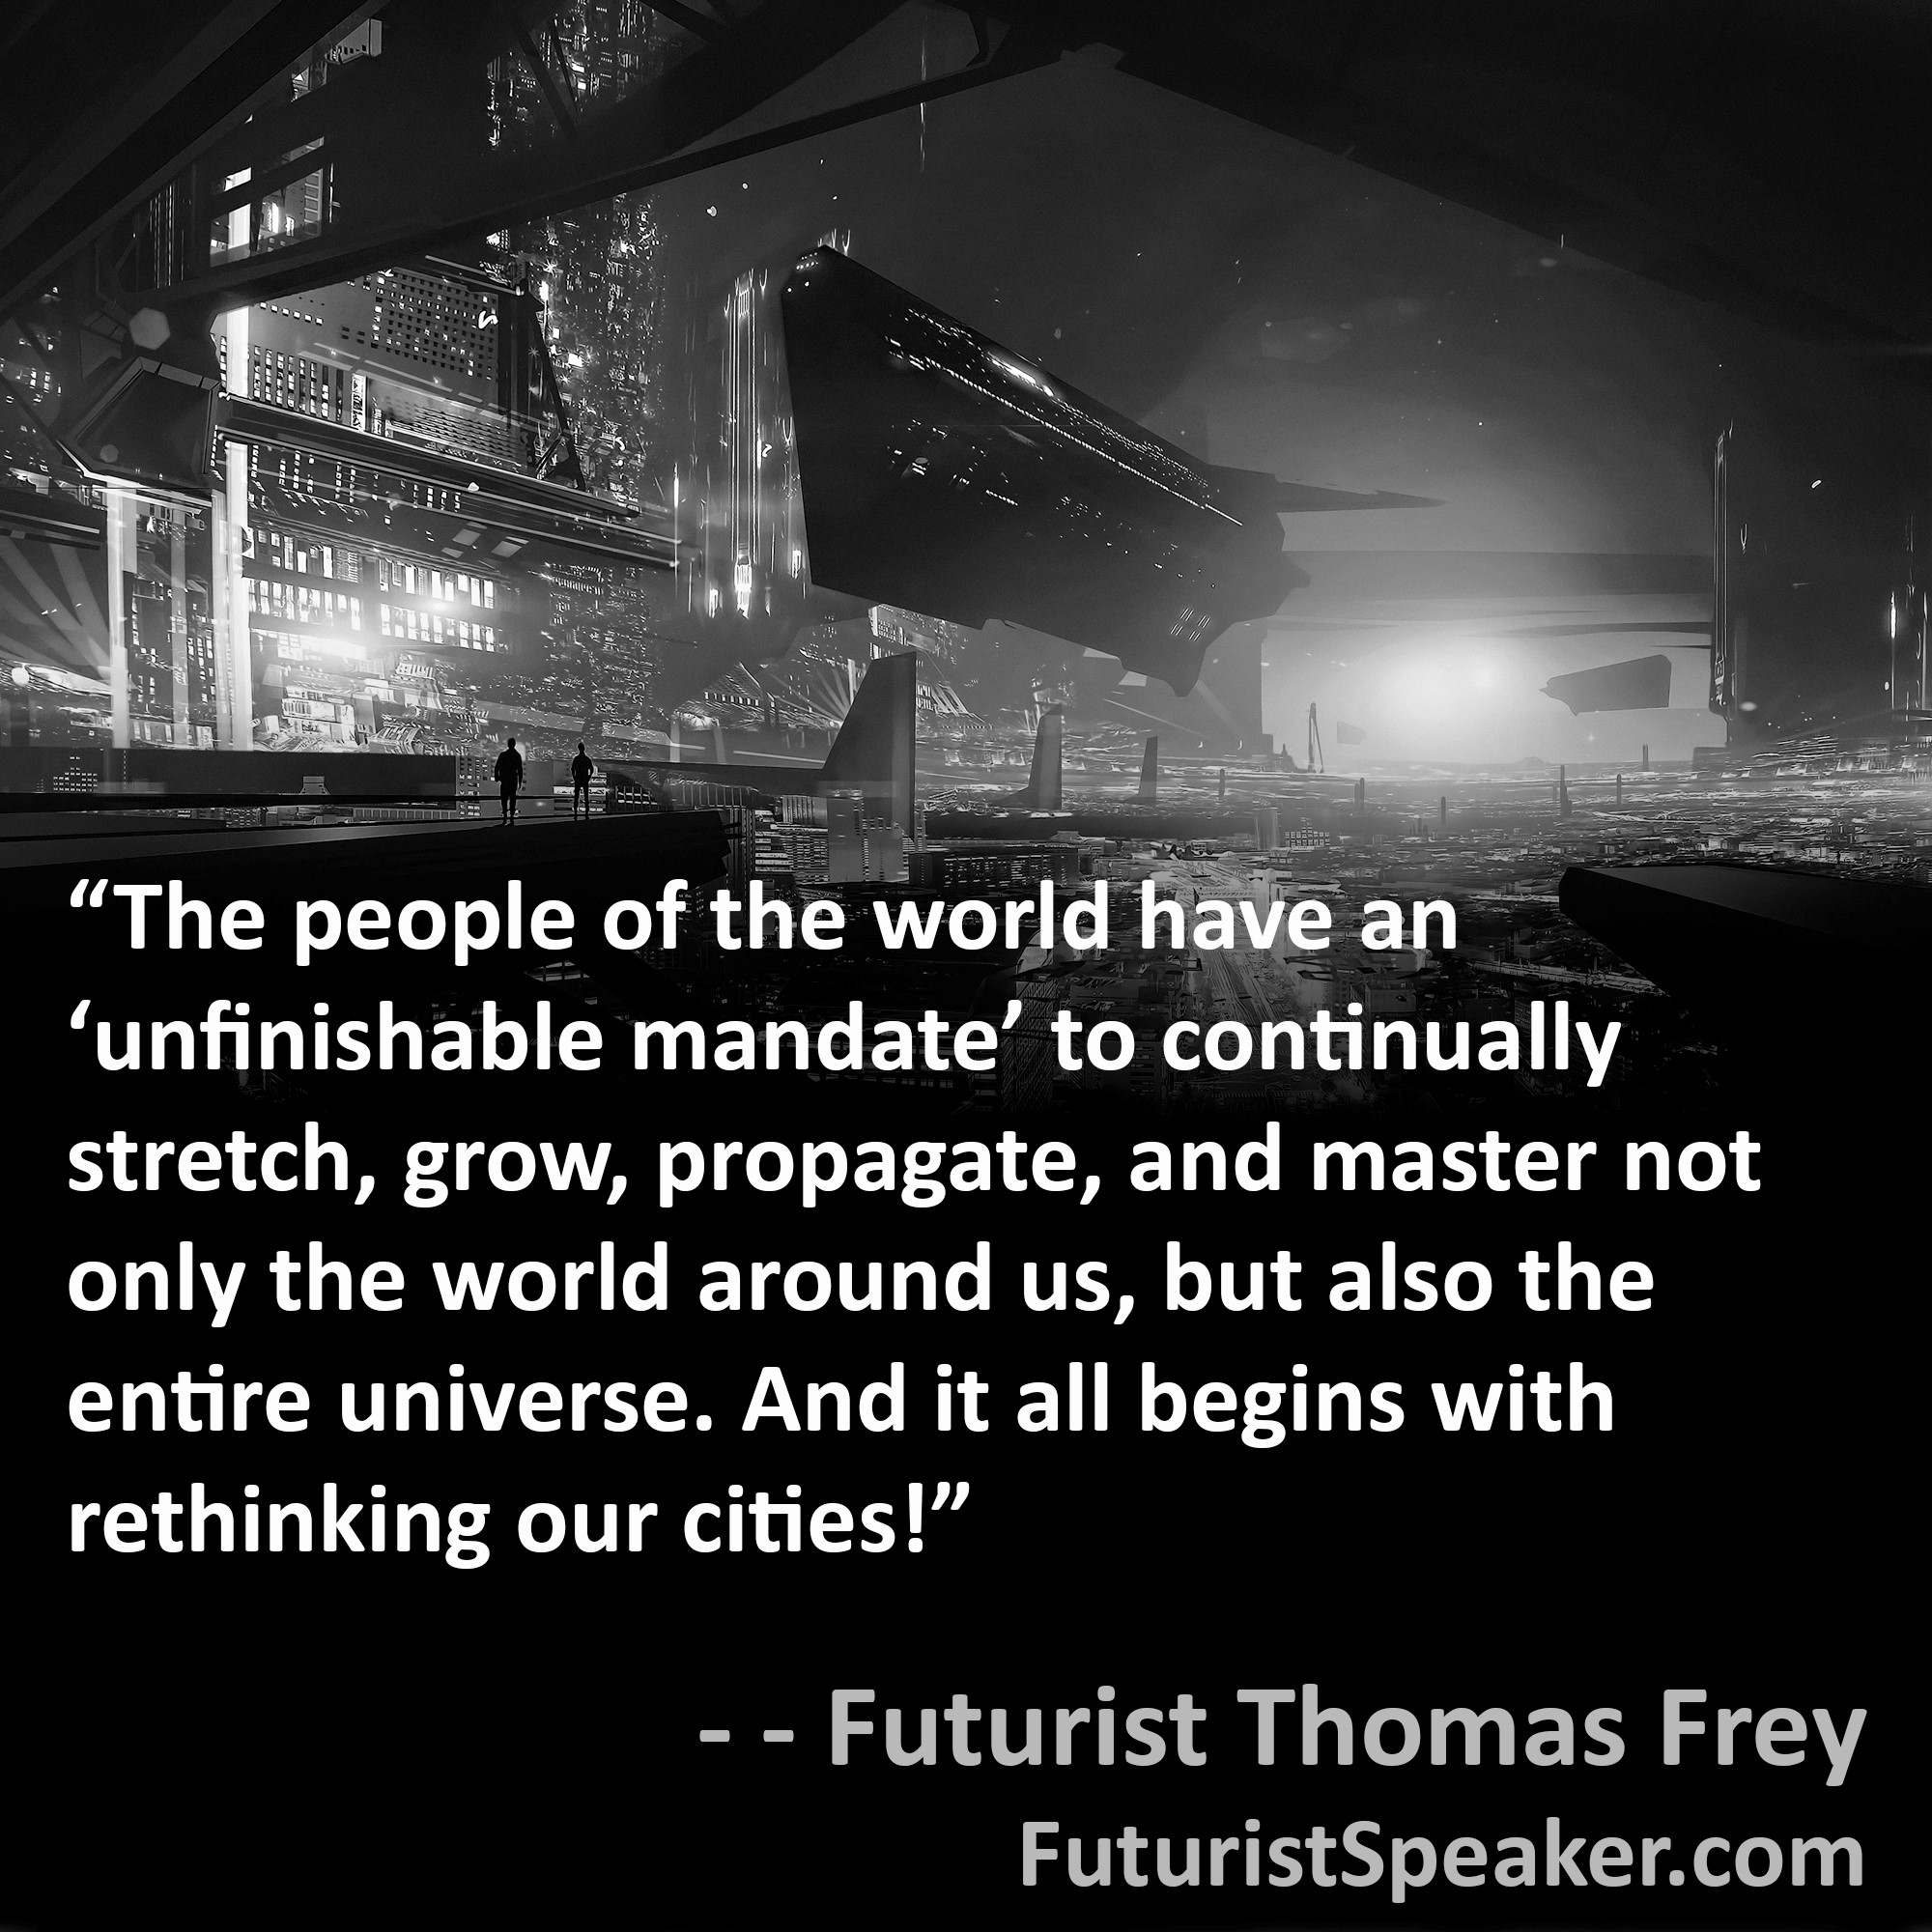 Thomas Frey Futurist Speaker Famous Quote: The people of the world have an unfinishable mandate to continually stretch, grow, propagate, and master not only the world arounds us, but also the entire universe. And it all begins with rethinking our cities.